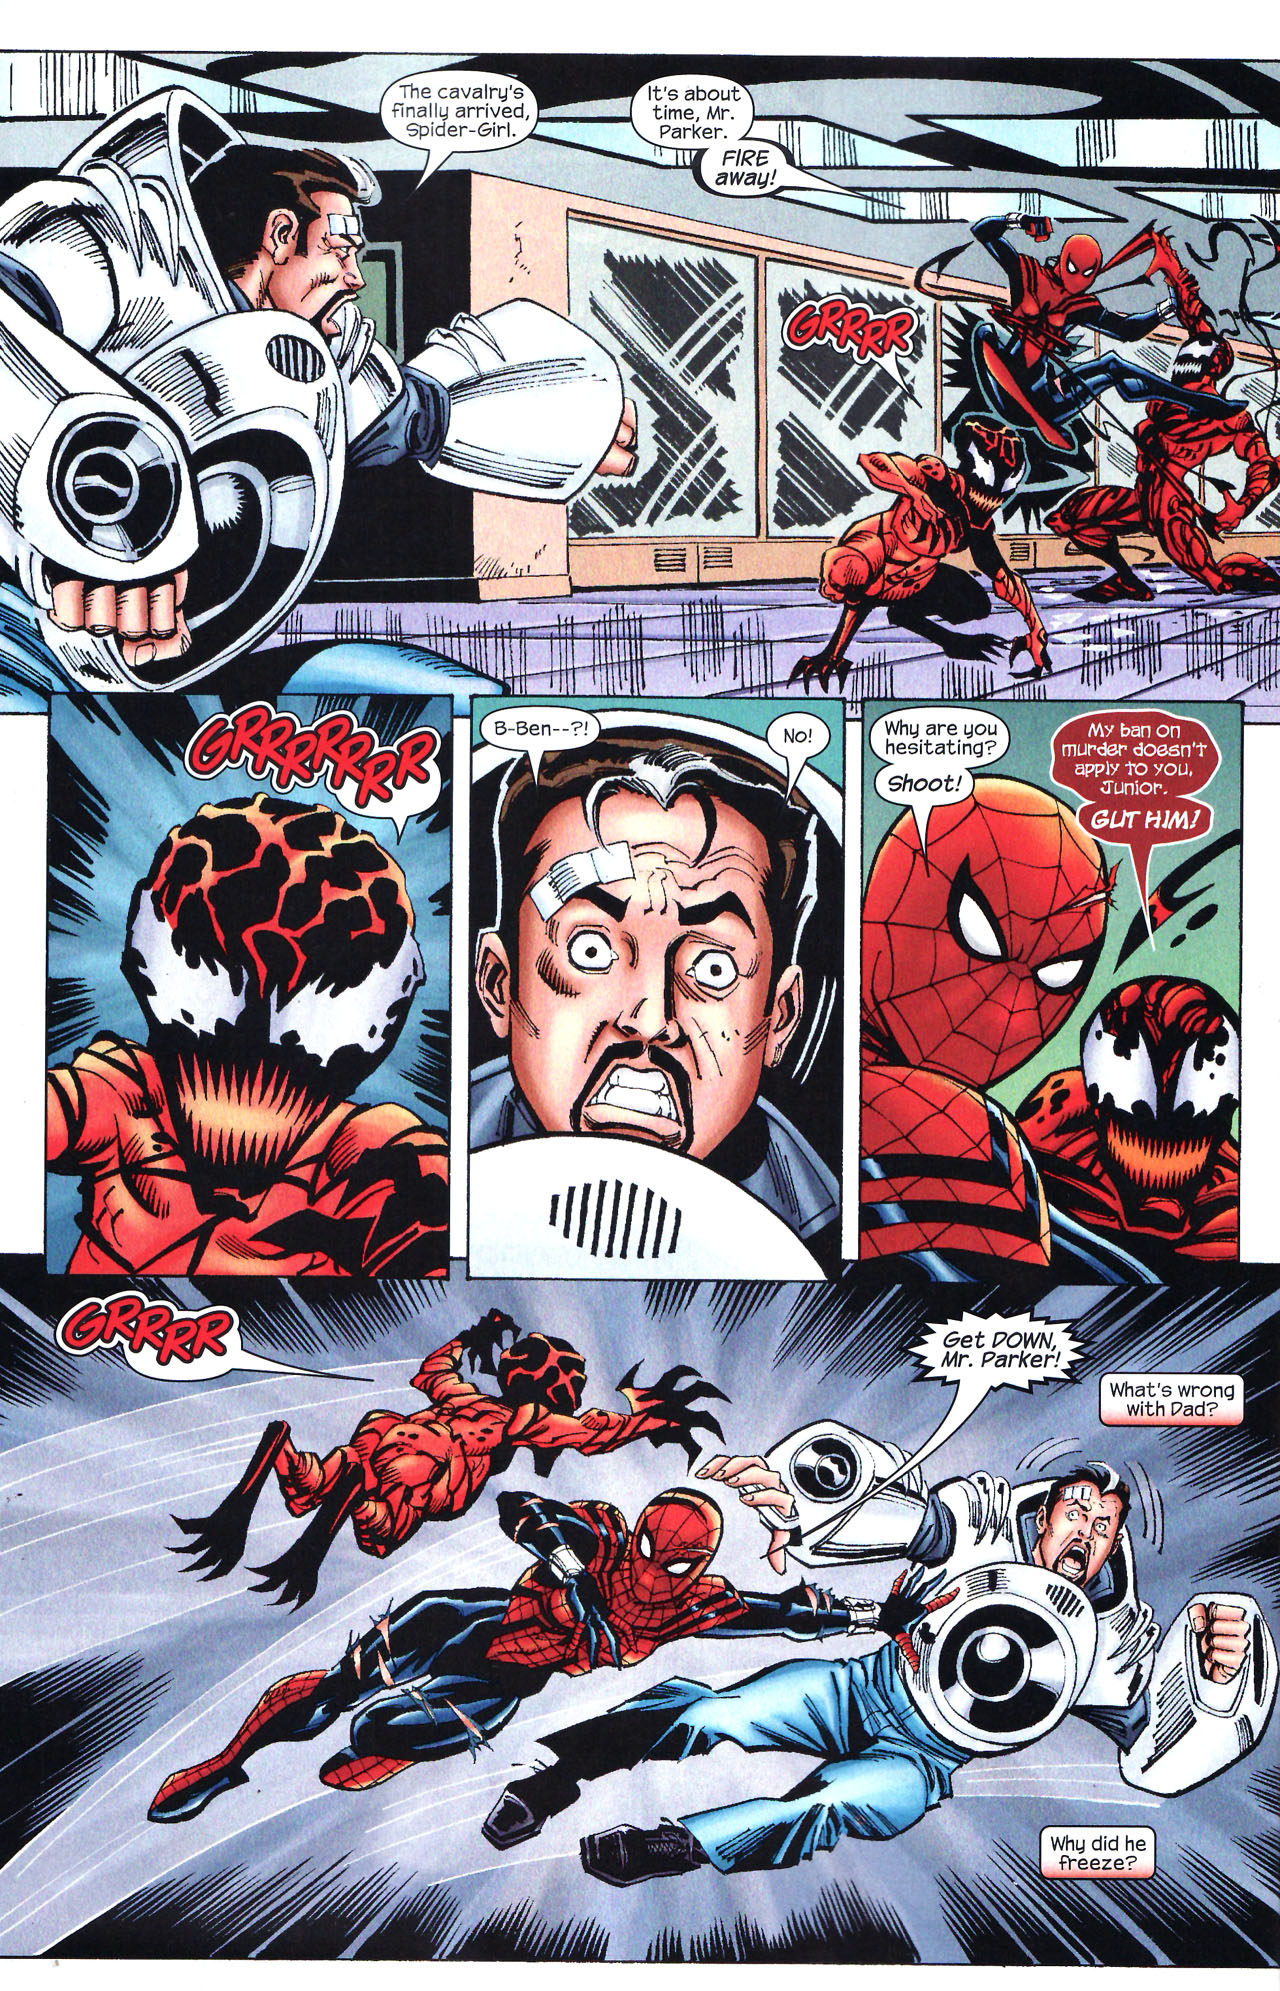 Read online Amazing Spider-Girl comic -  Issue #12 - 18